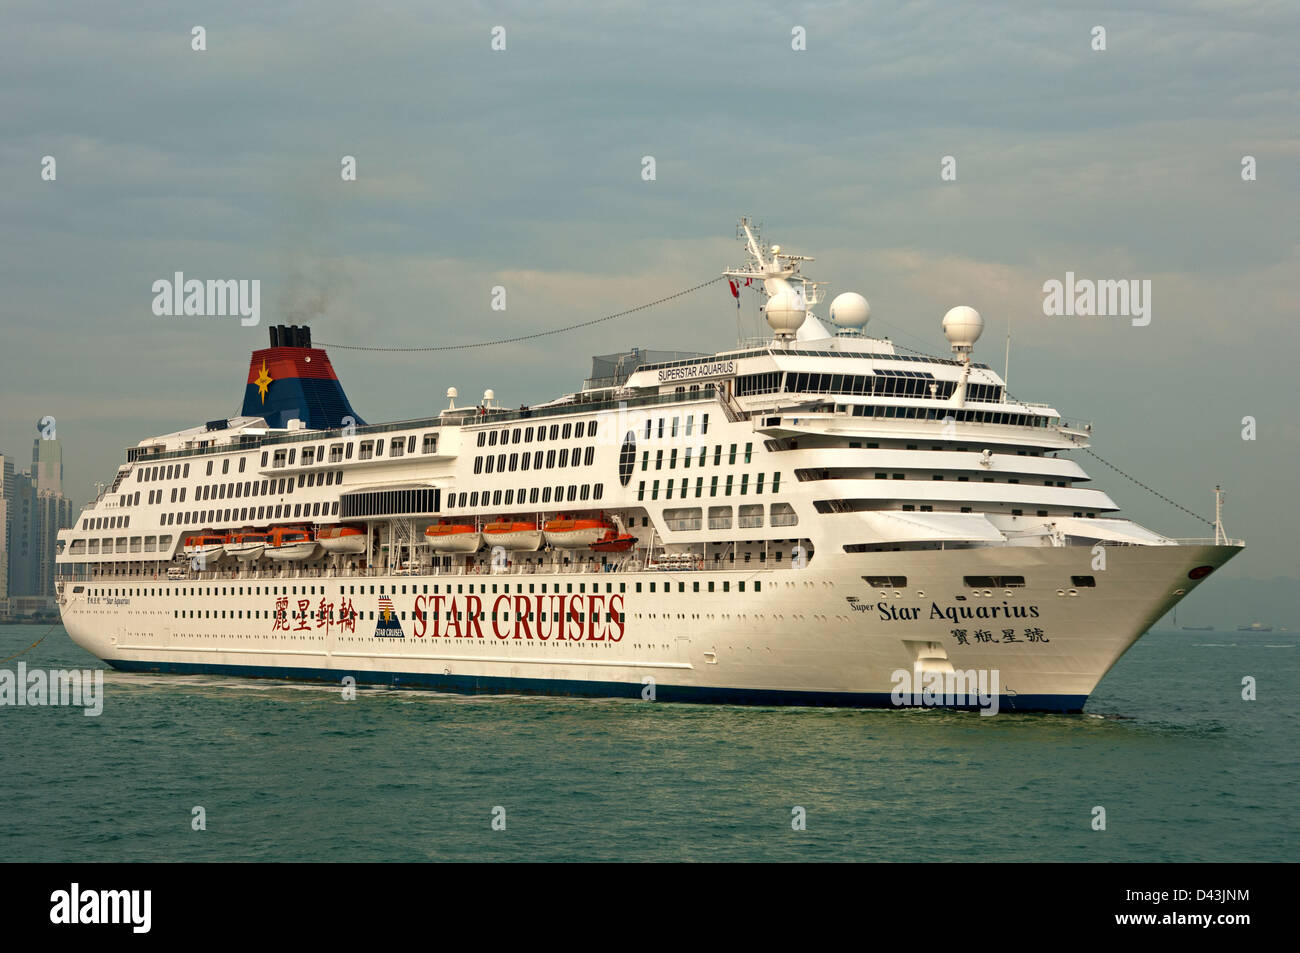 Cruise liner SuperStar Aquarius in the Victoria Harbour of Hong Kong - Stock Image